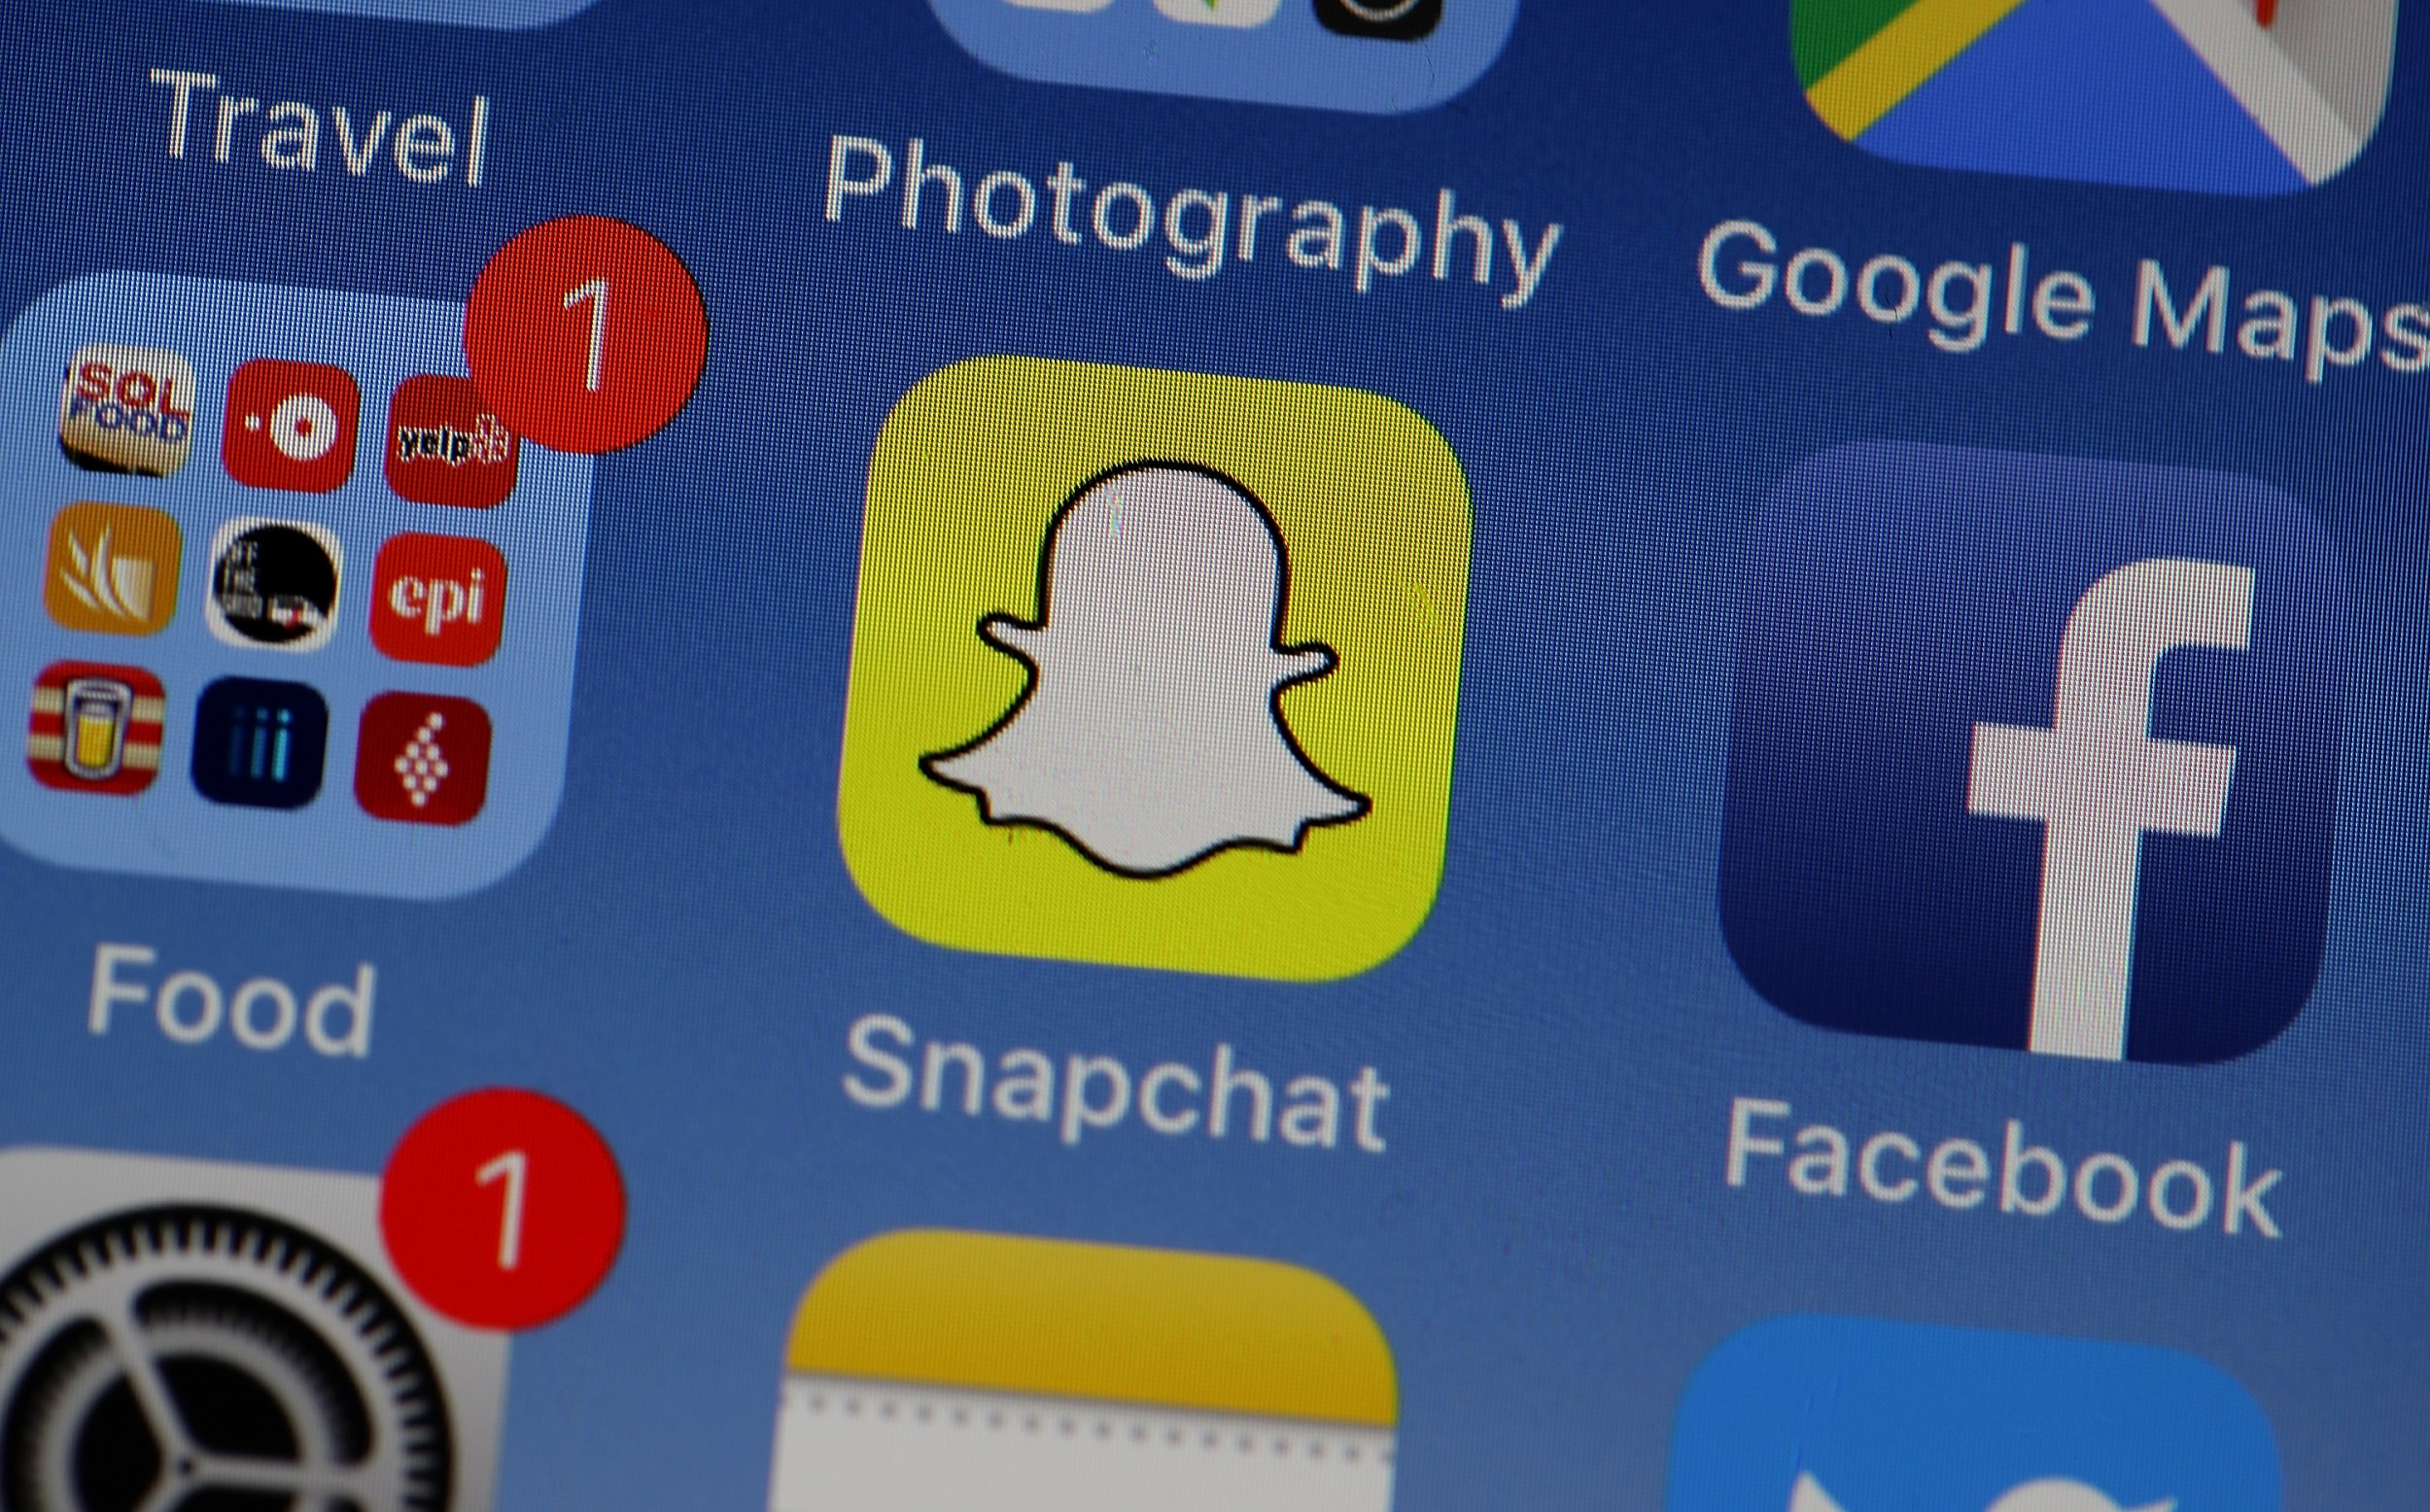 Snapchat Keeps Crashing, Stopping? App Down For Some Users